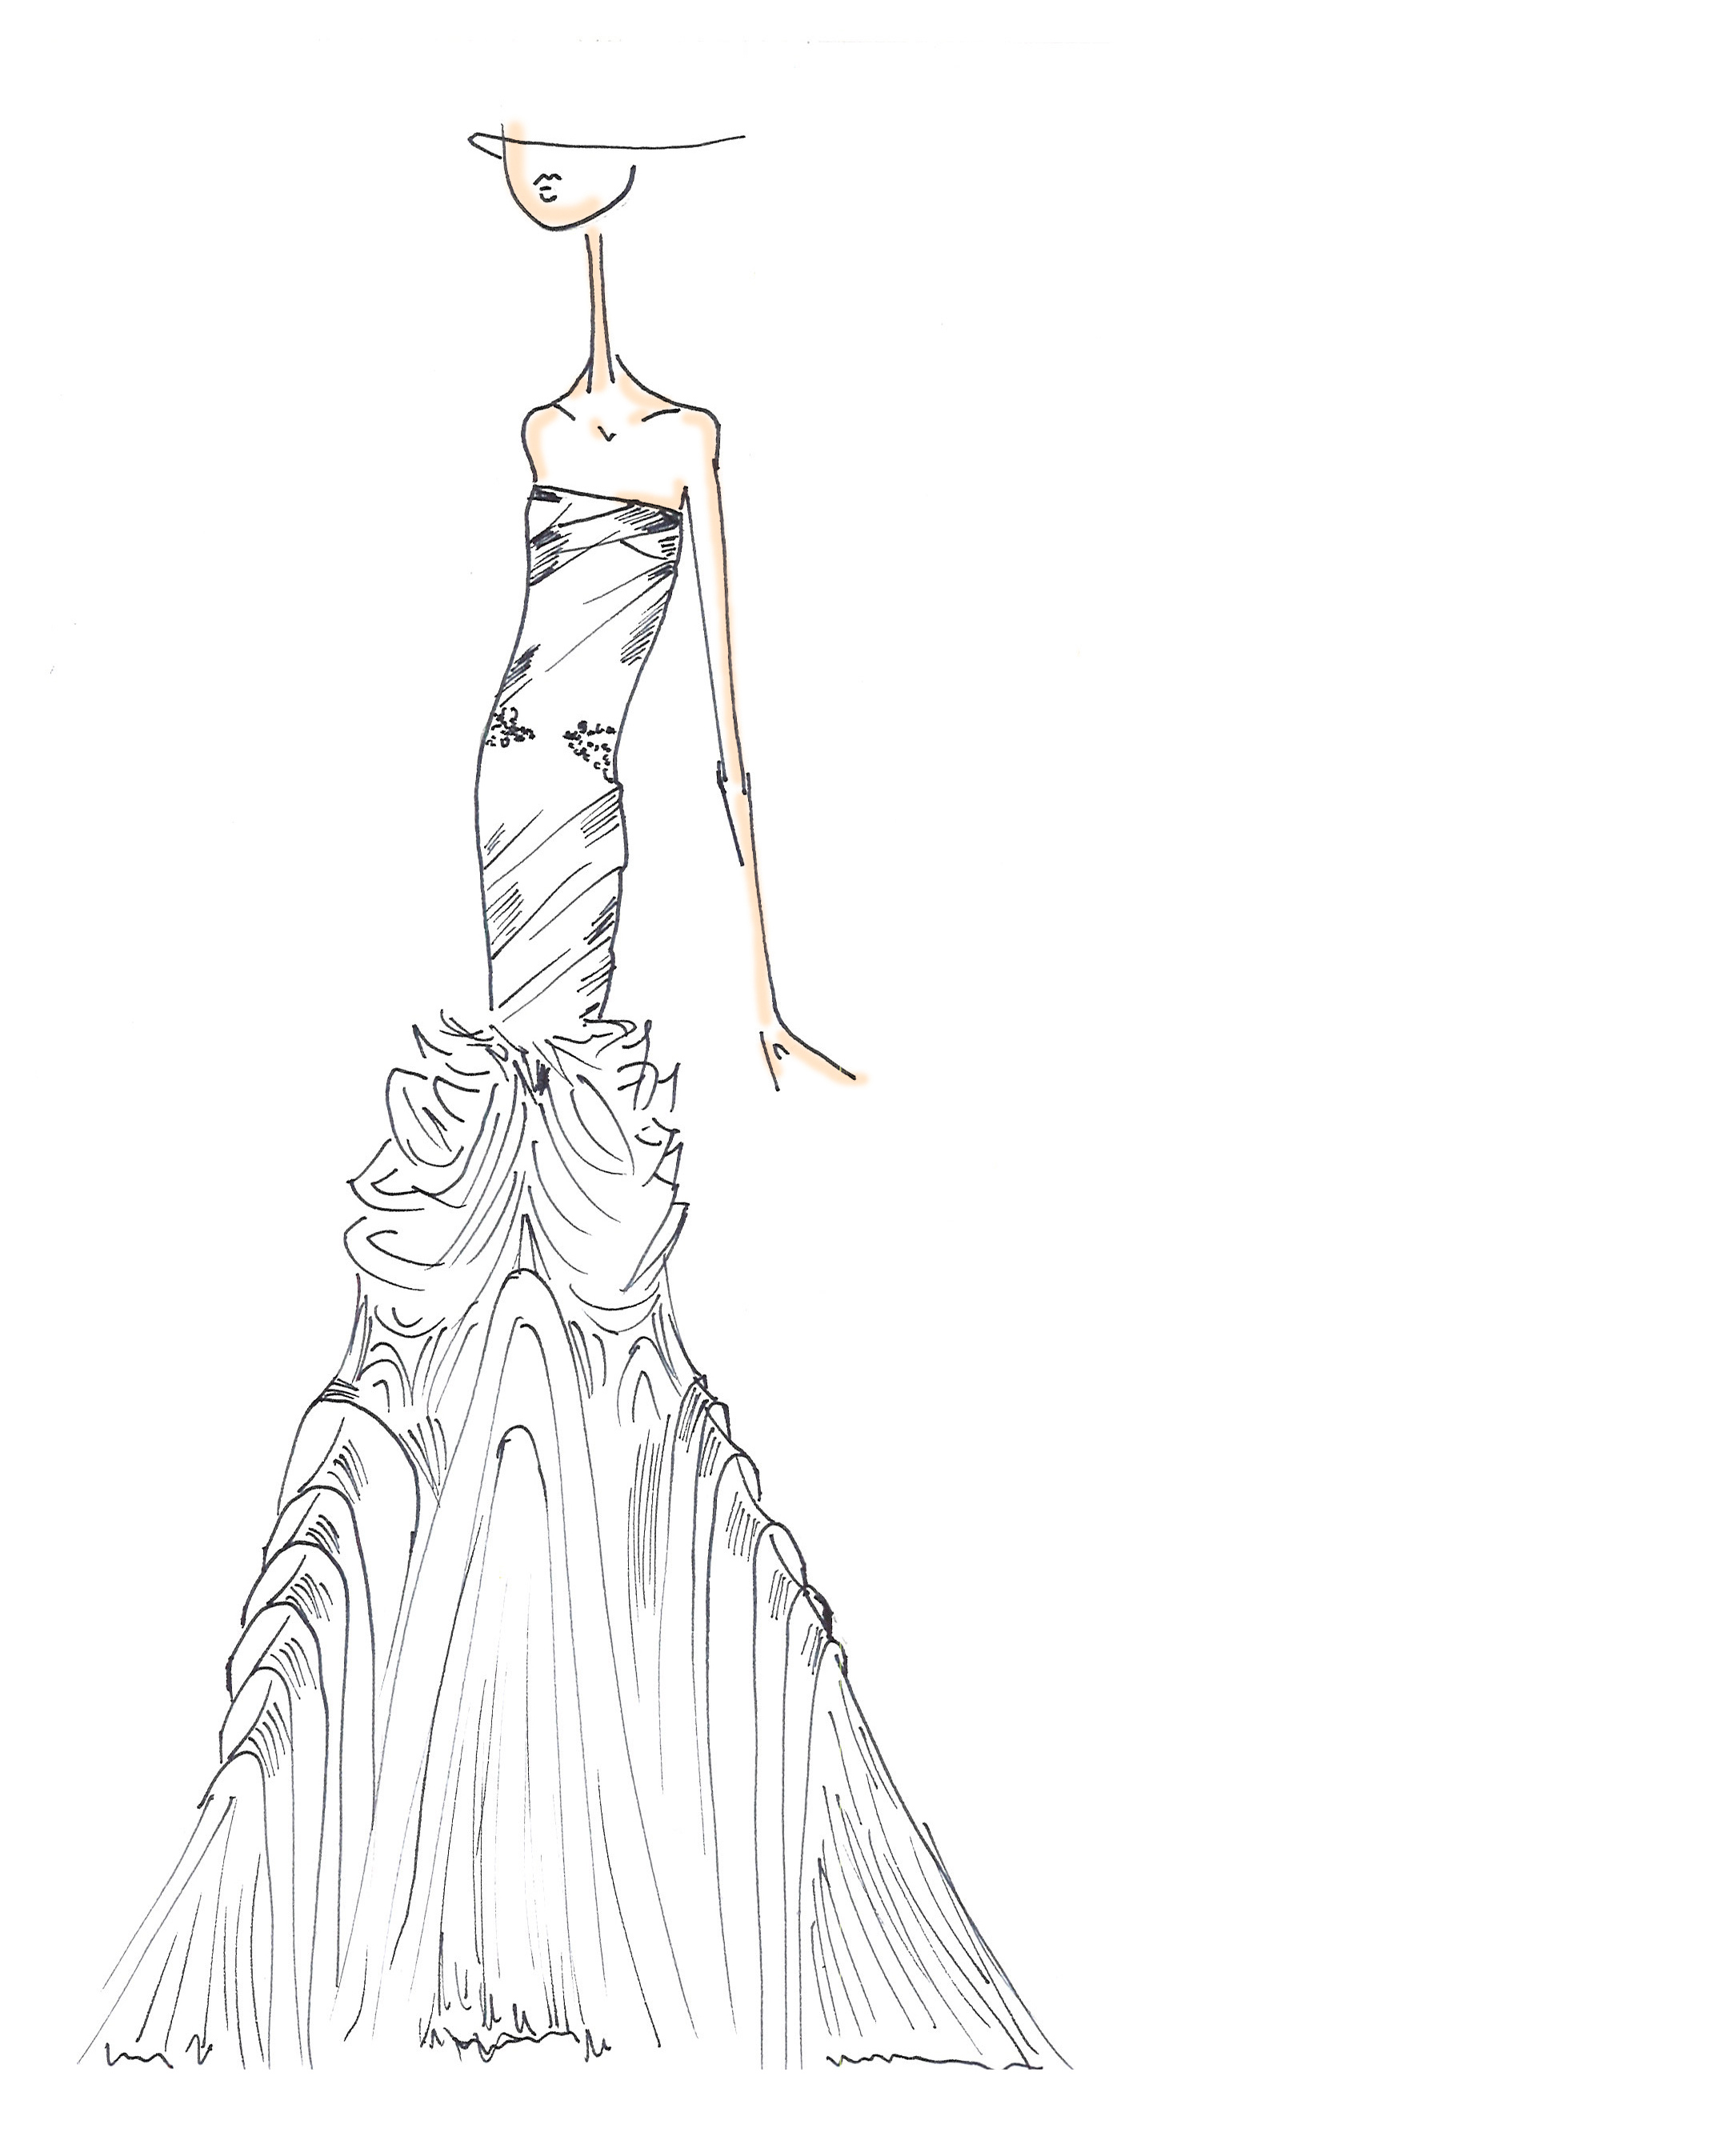 Reception Dress: The Sketch